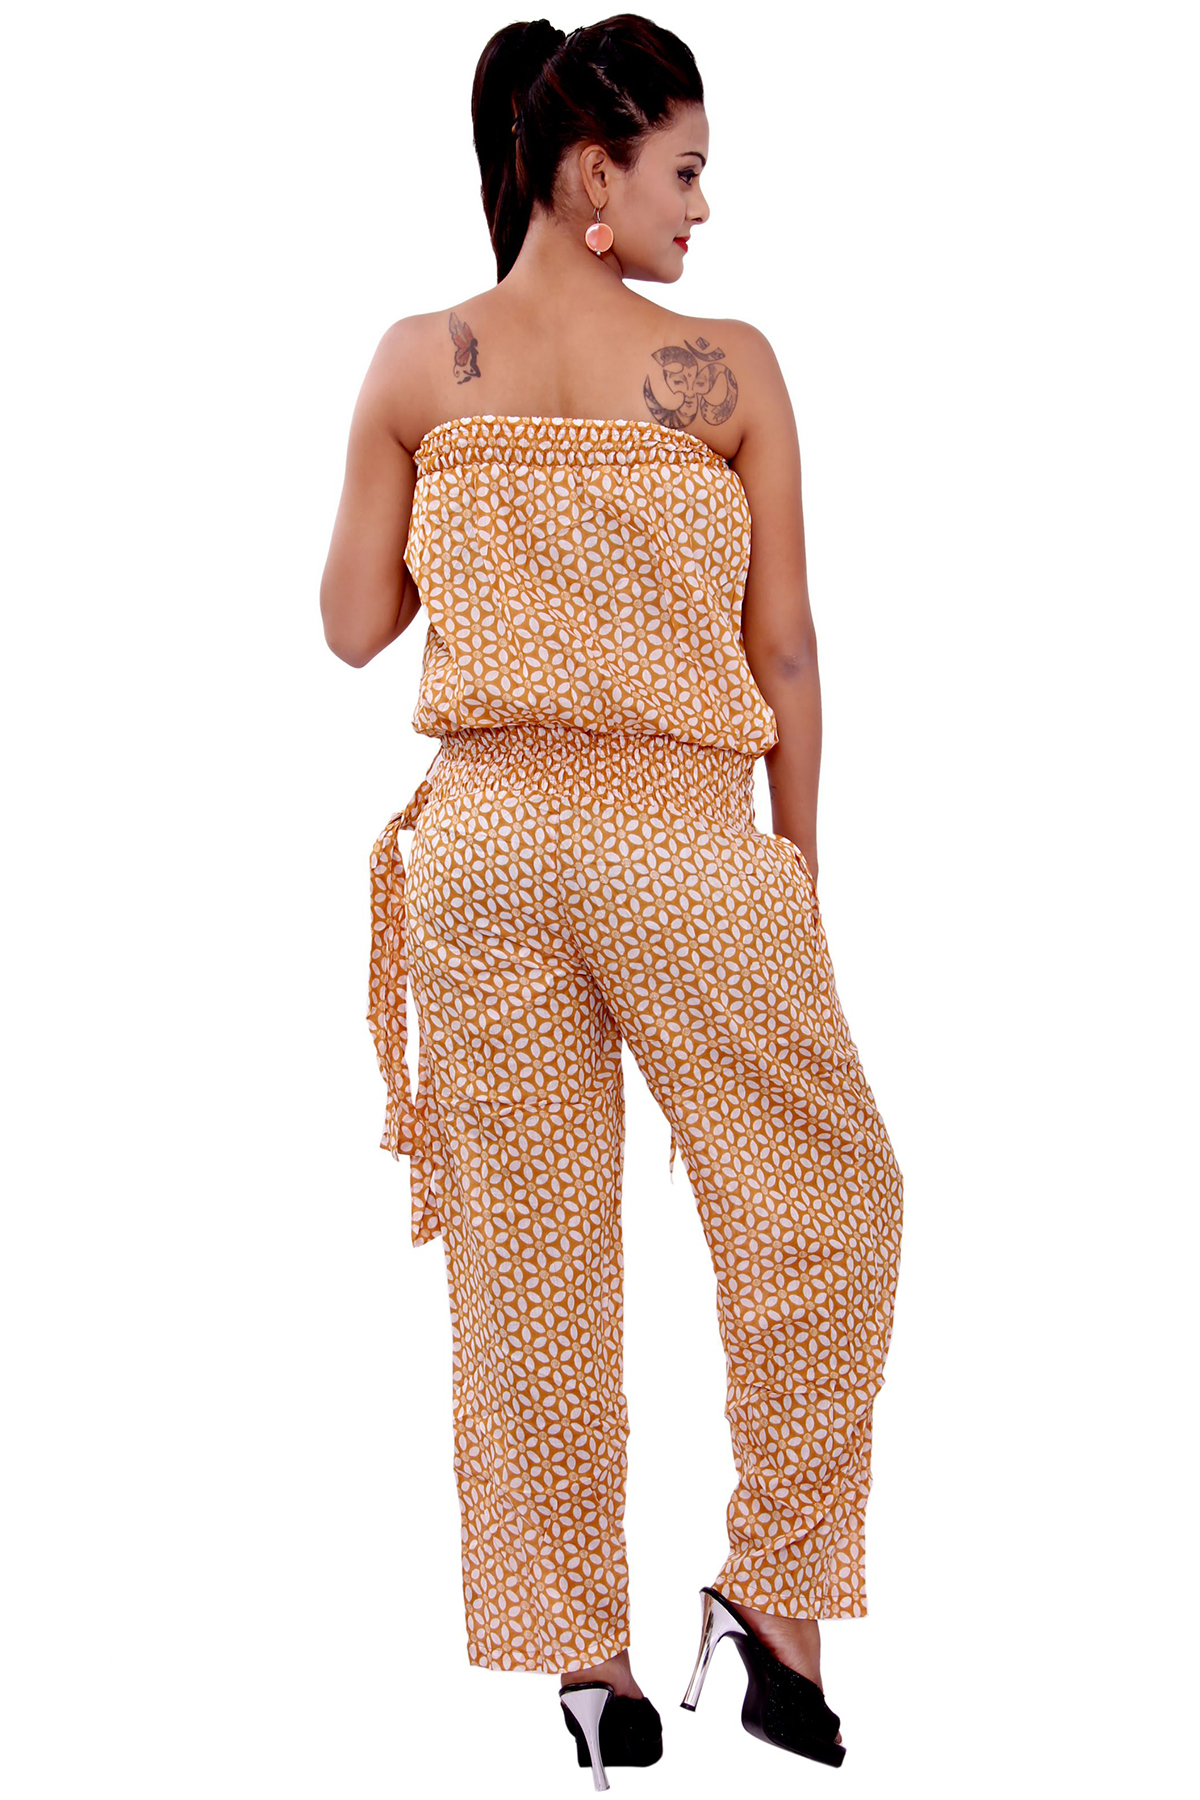 The '!7 Again Jumpsuit' is a simple and classic piece that will make the cut for any occasion. featuring a thin adjustable strap with V neckline, shirred waistline and flare leg with side split detail.